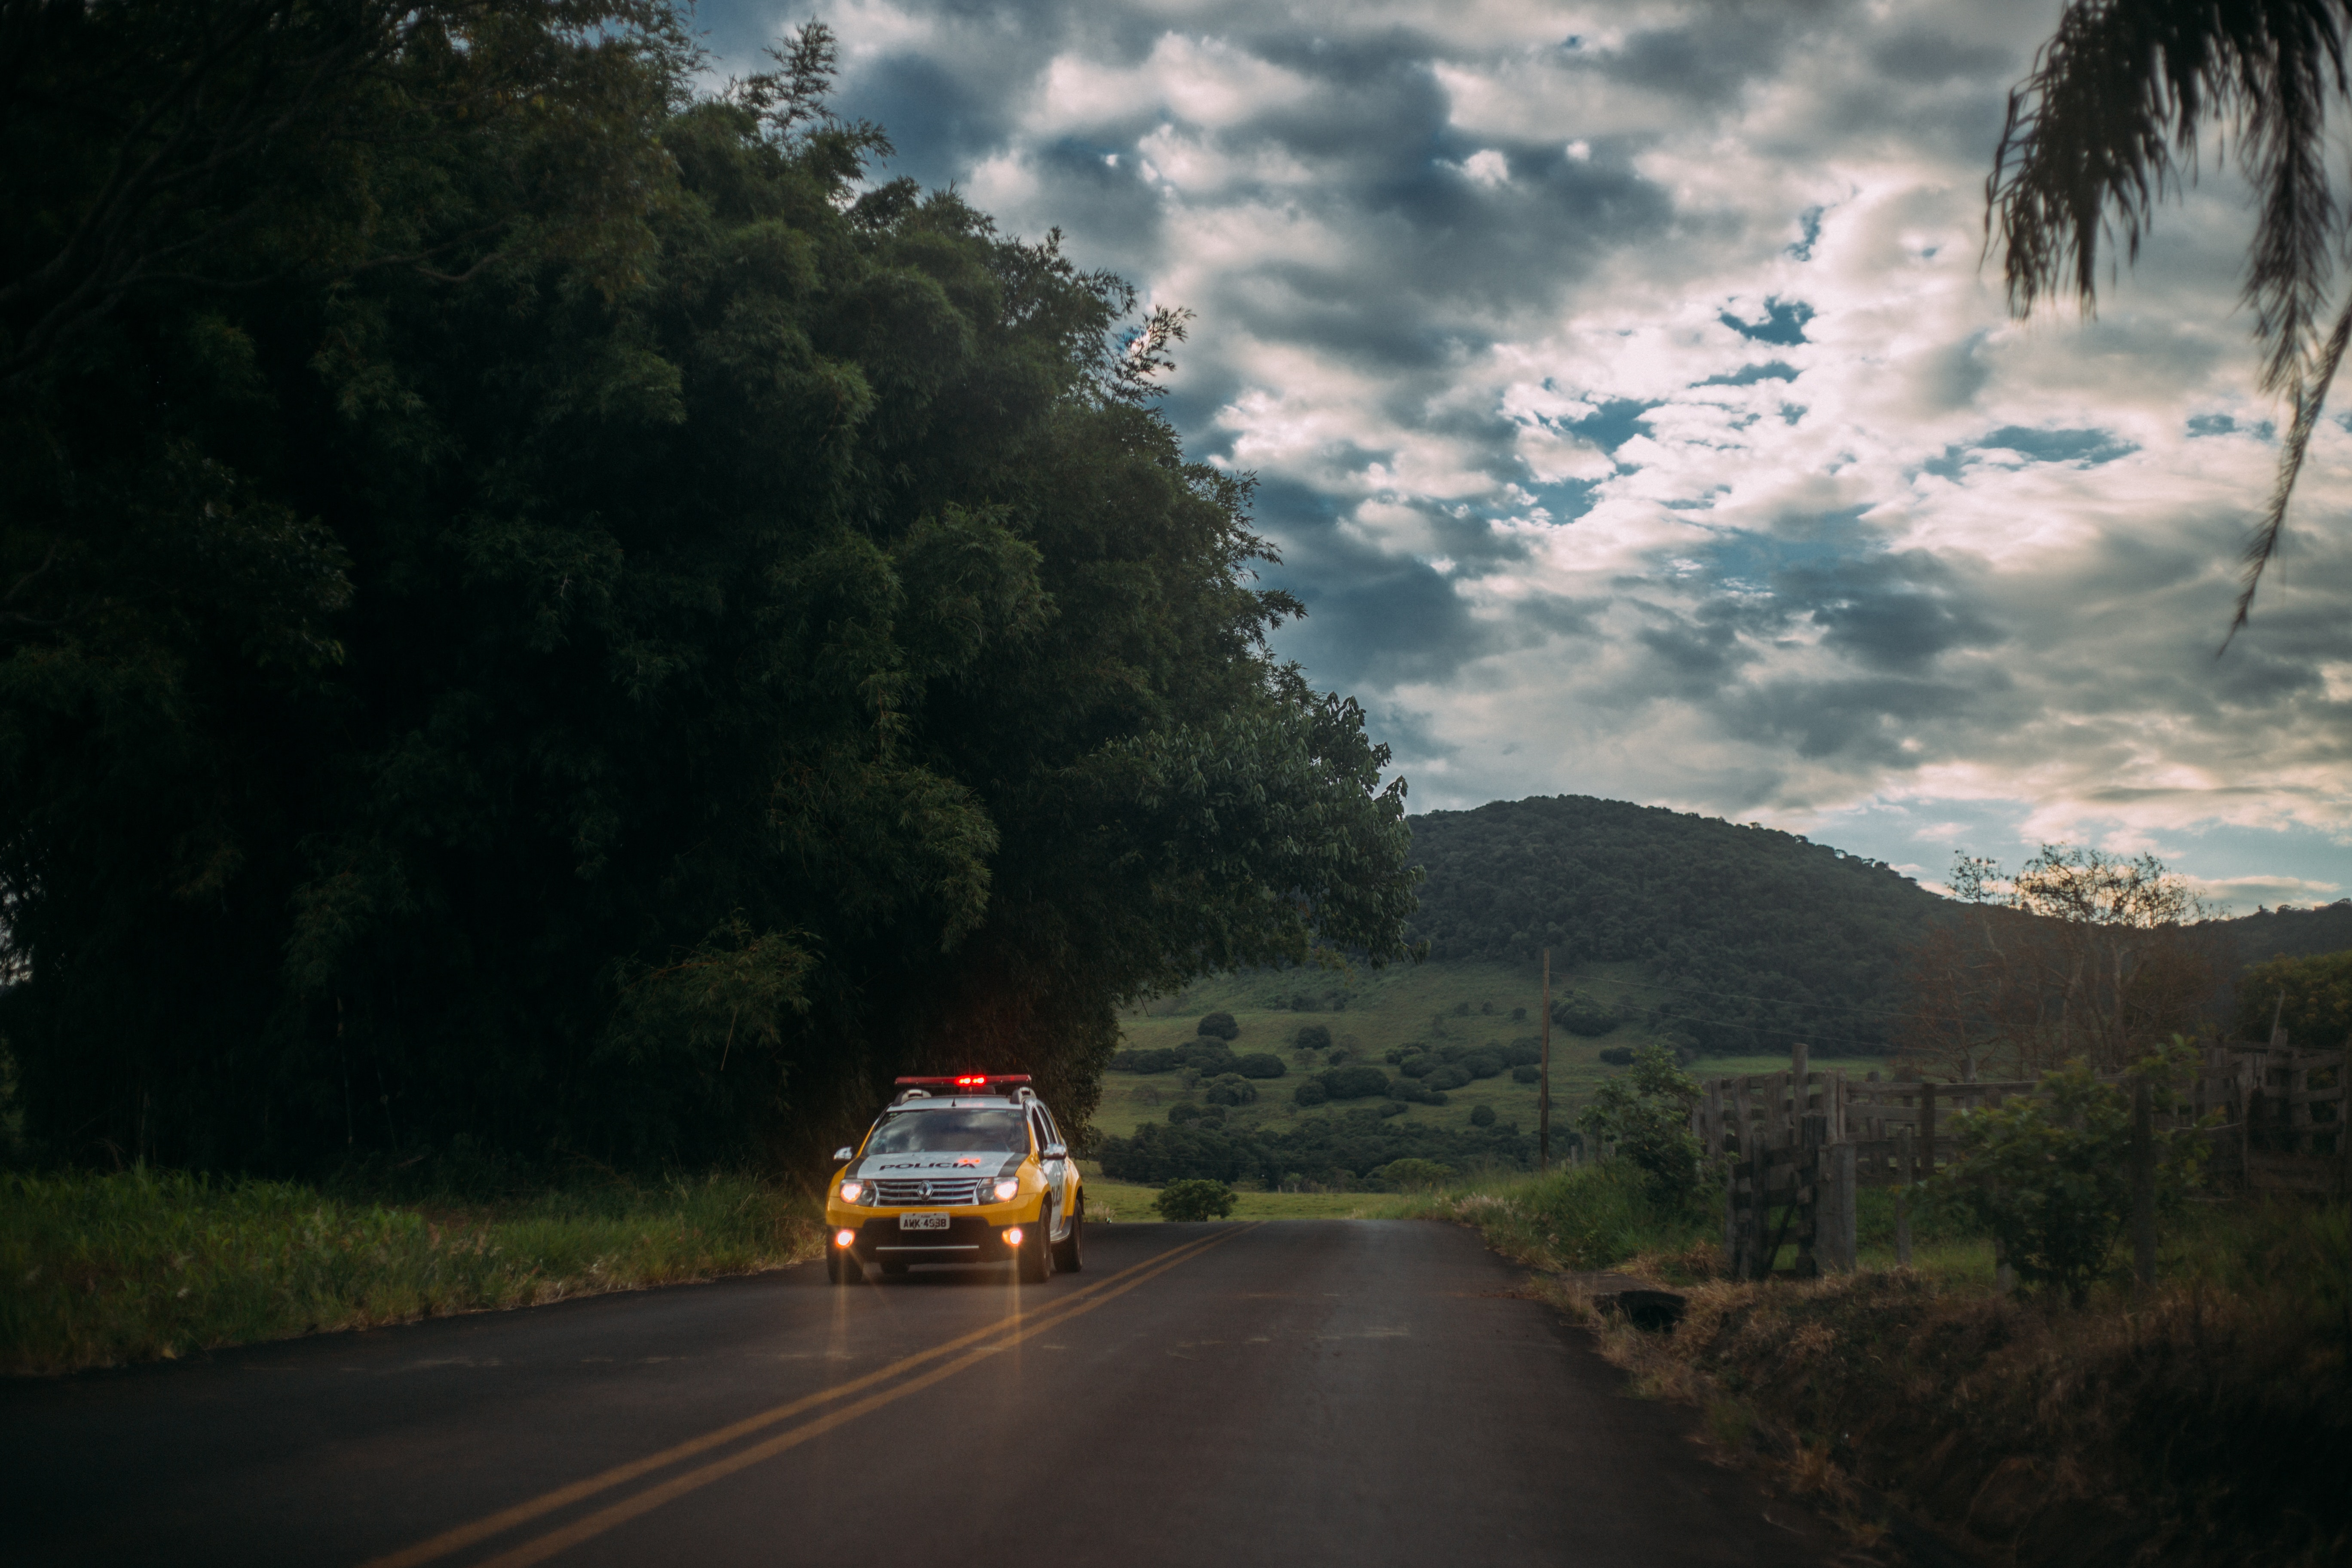 Yellow and white police car lone on the road photo